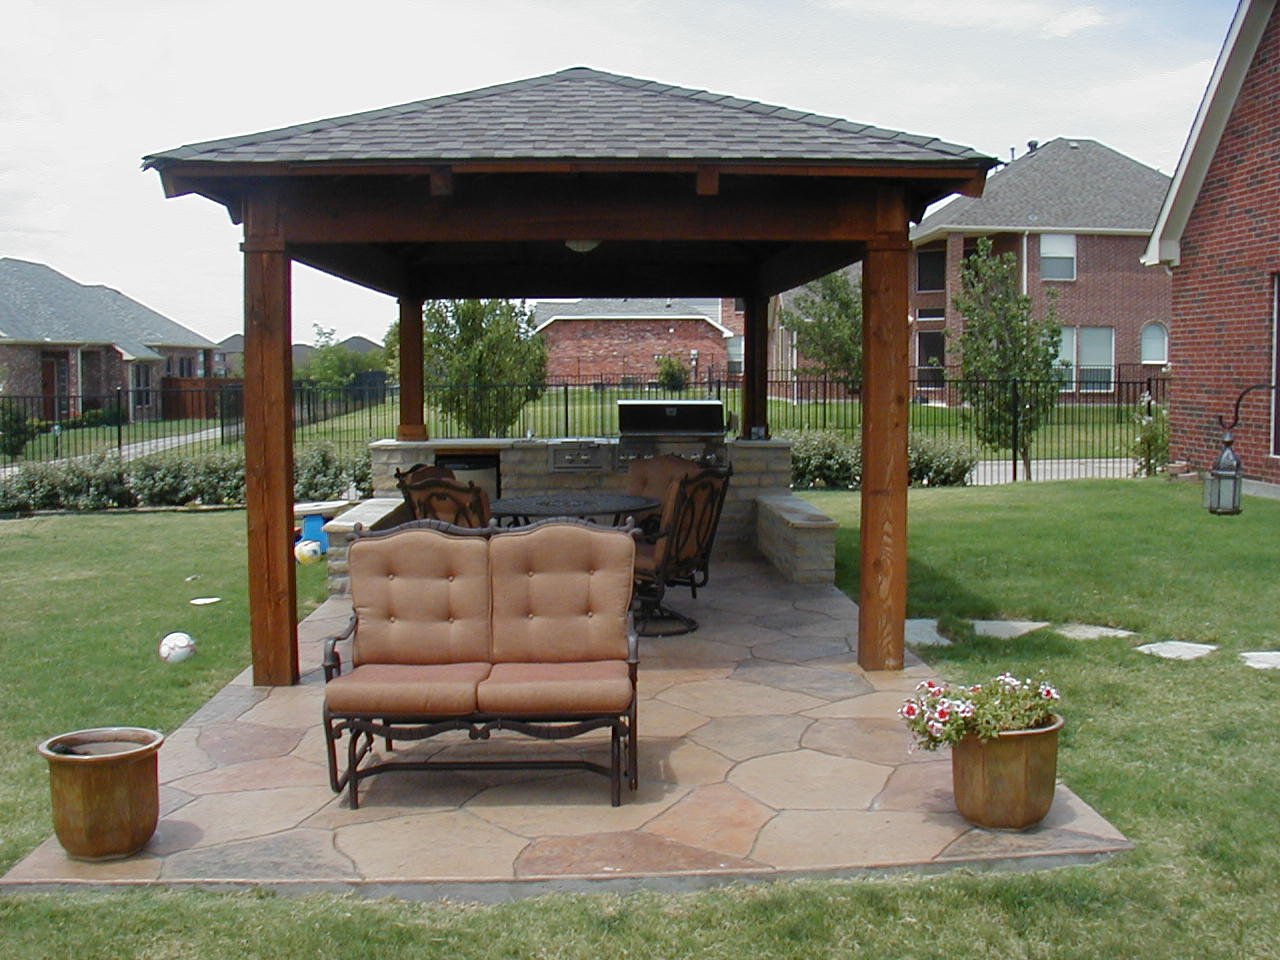 outdoor covered patio designs covered patio ideas for backyard home design ideas outdoor covered patio designs - Outdoor Covered Patio Ideas